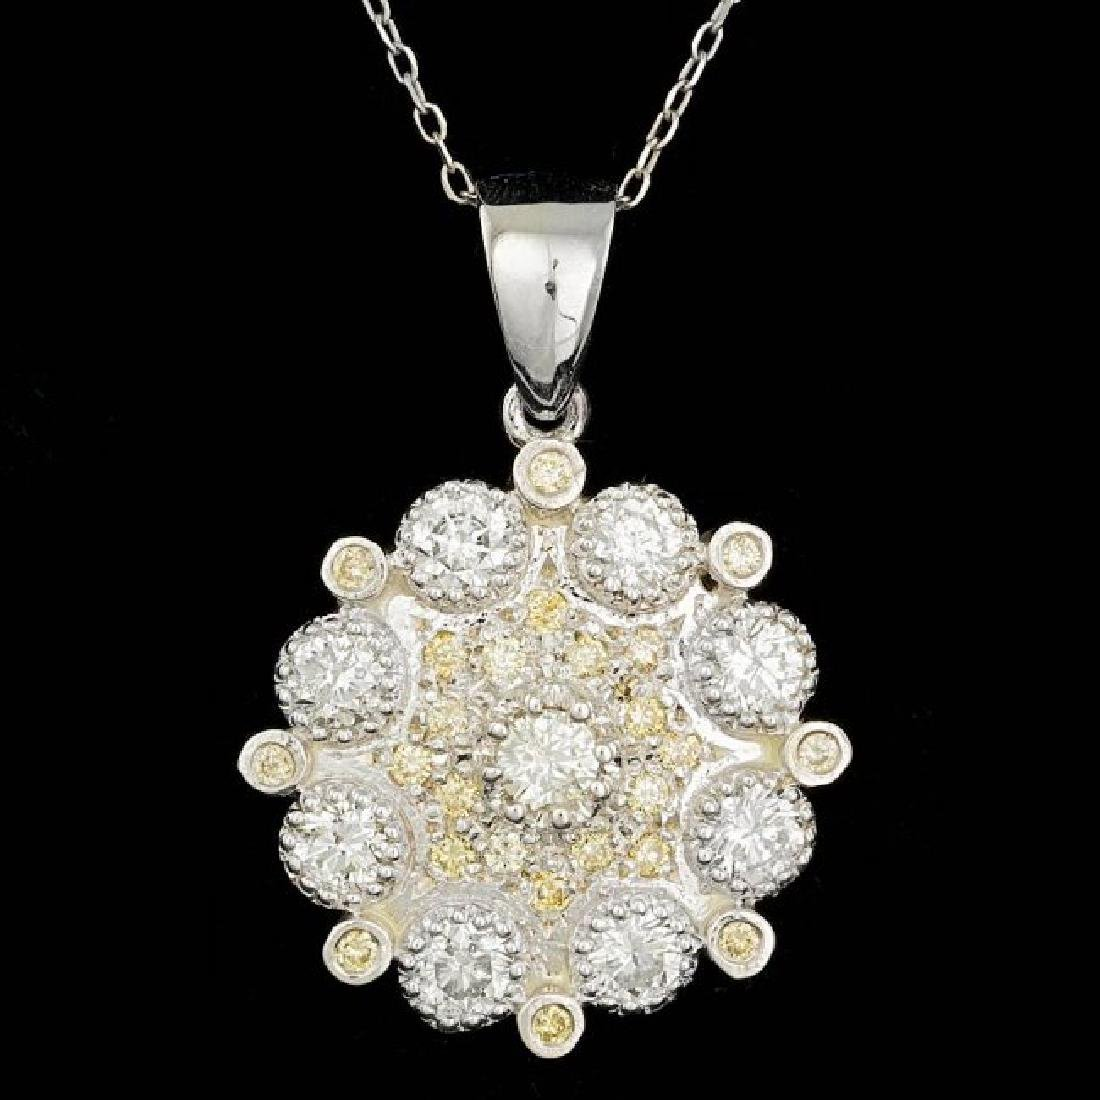 14k White Gold 2.1ct Diamond Pendant